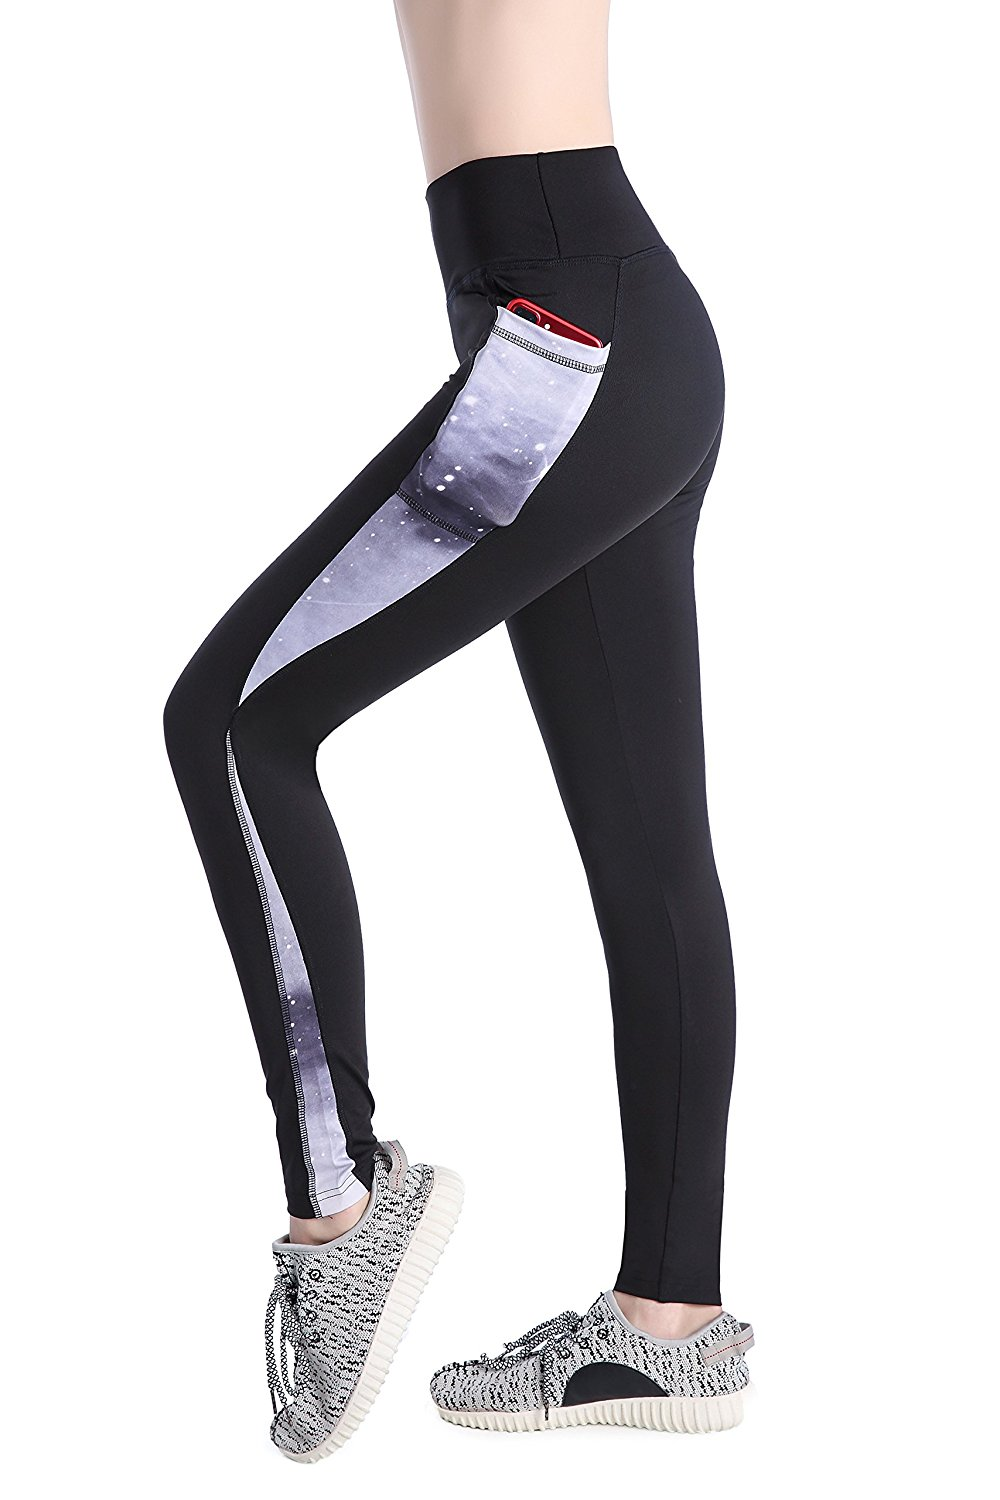 bf1a43defc1a9 Get Quotations · Annjoli Women's Workout Leggings Yoga Running Pants with  Pockets